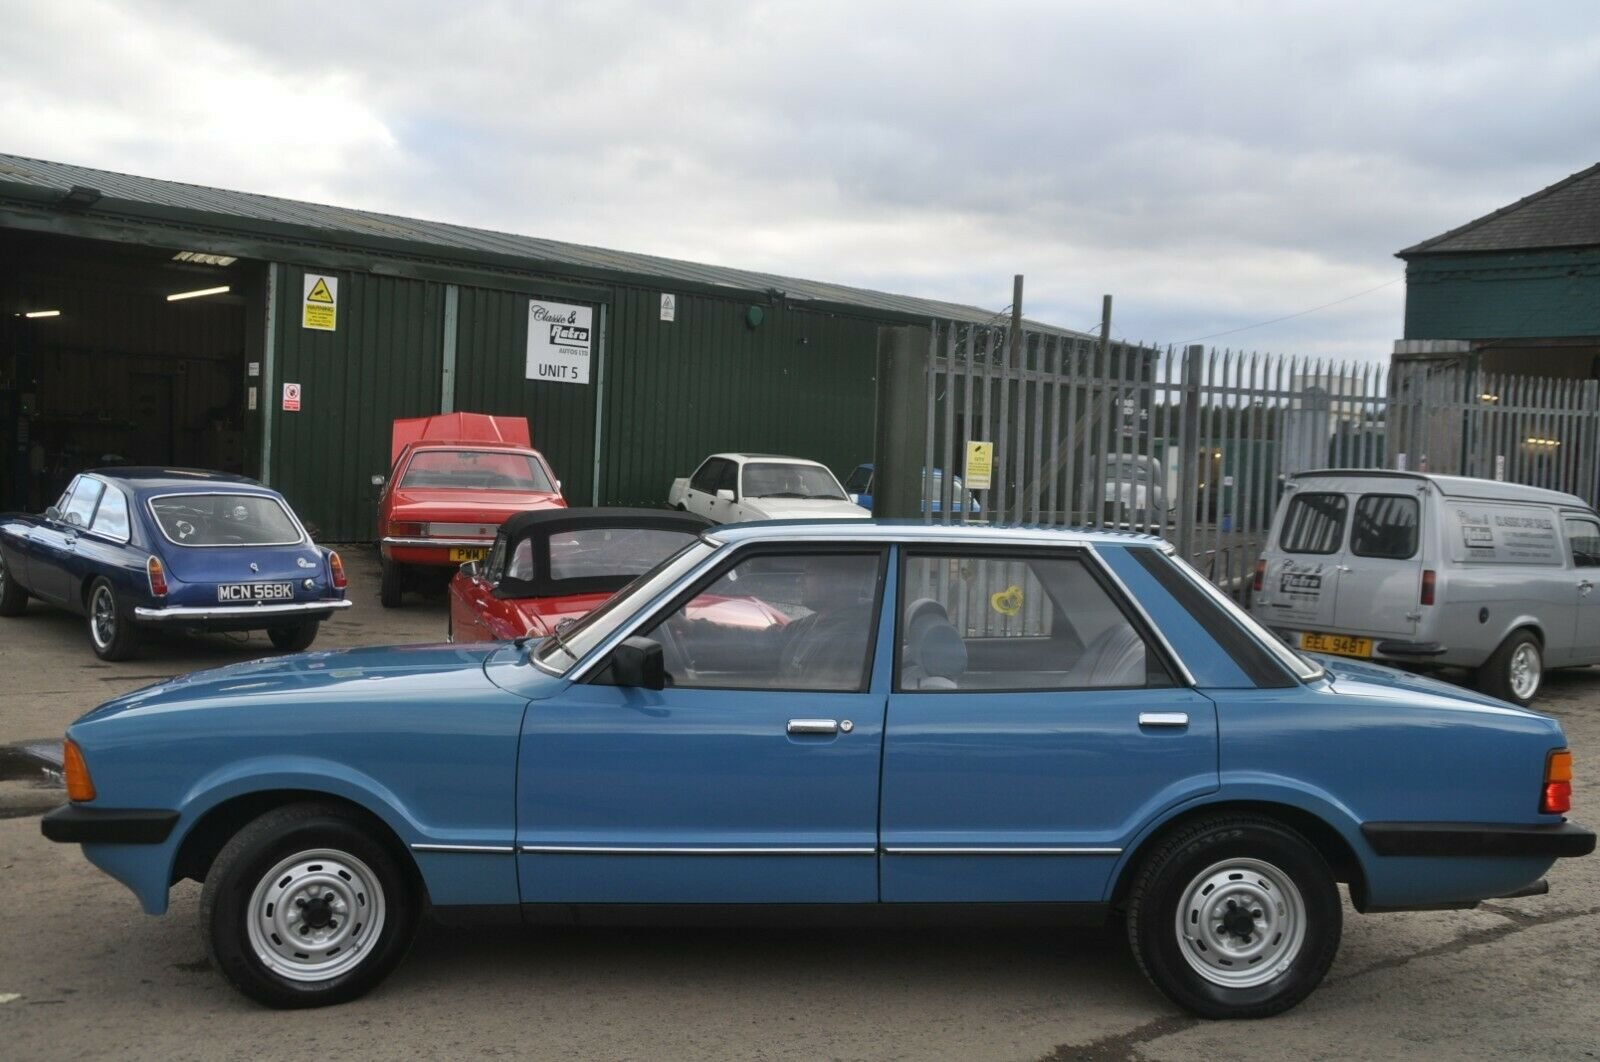 1981 FORD CORTINA L MK5 LOW MILES  For Sale (picture 1 of 6)